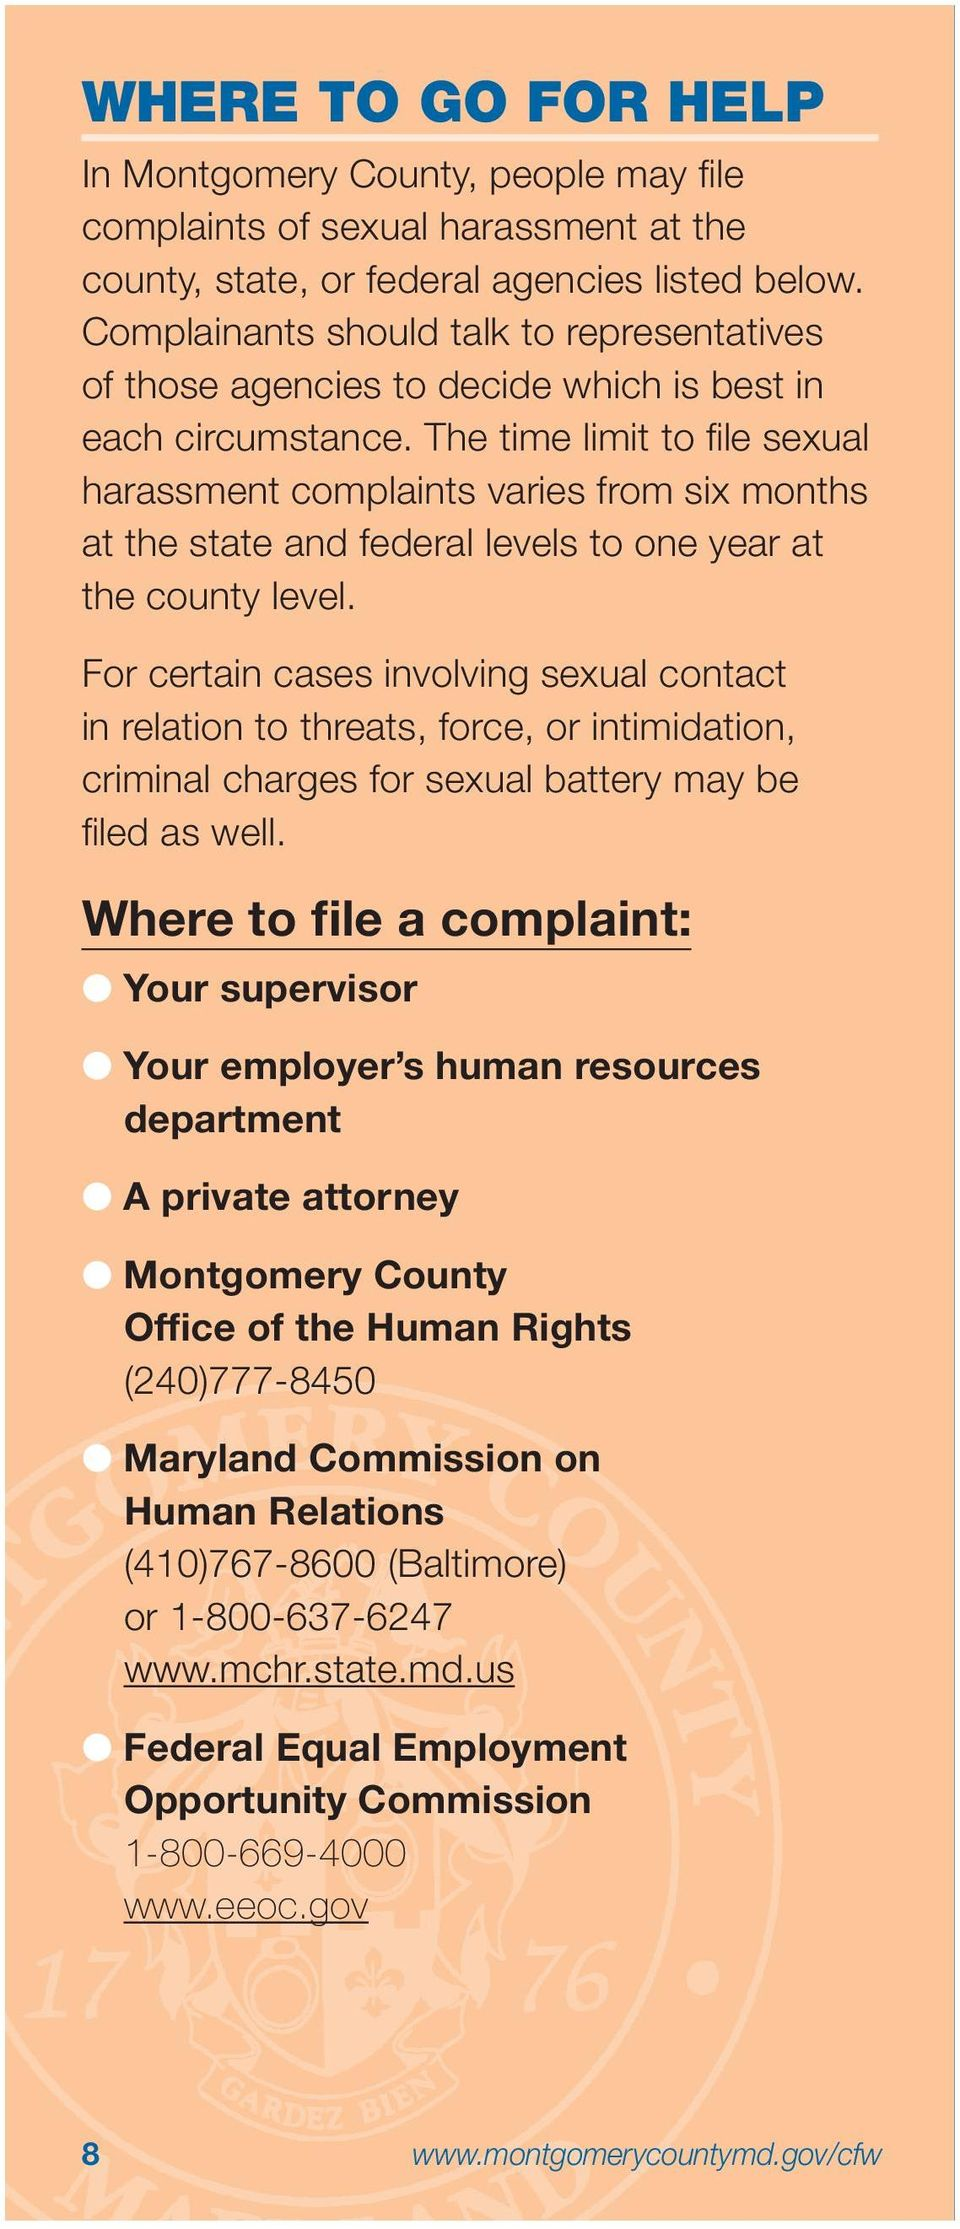 The time limit to file sexual harassment complaints varies from six months at the state and federal levels to one year at the county level.